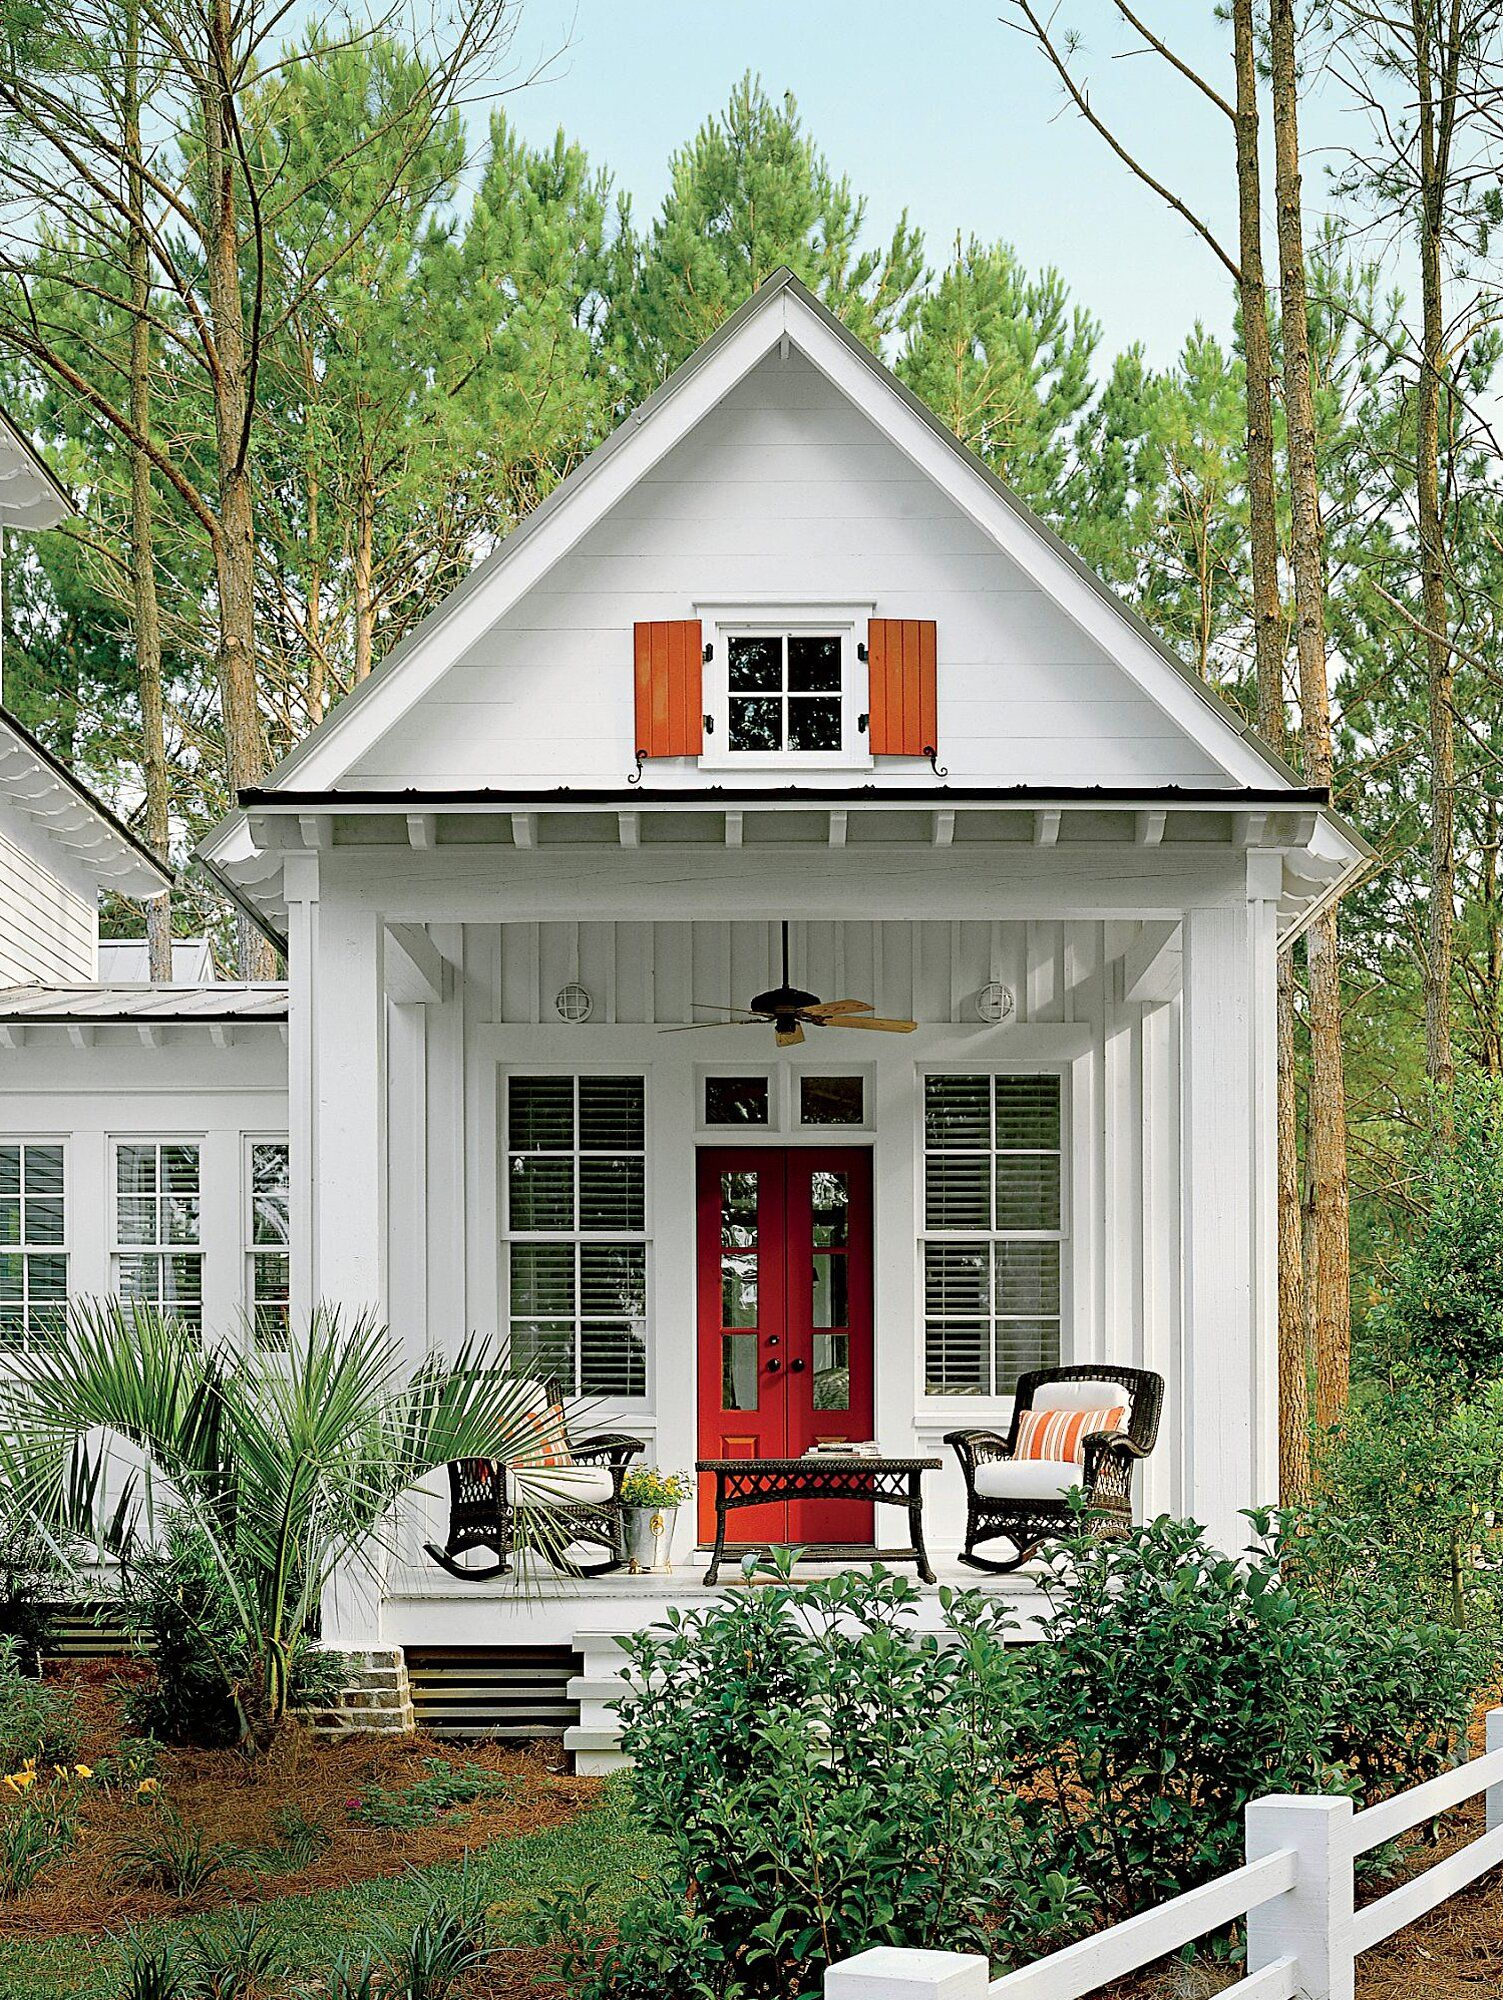 2016 Best Selling House Plans In 2020 Southern House Plans Modern Farmhouse Plans Southern Living House Plans